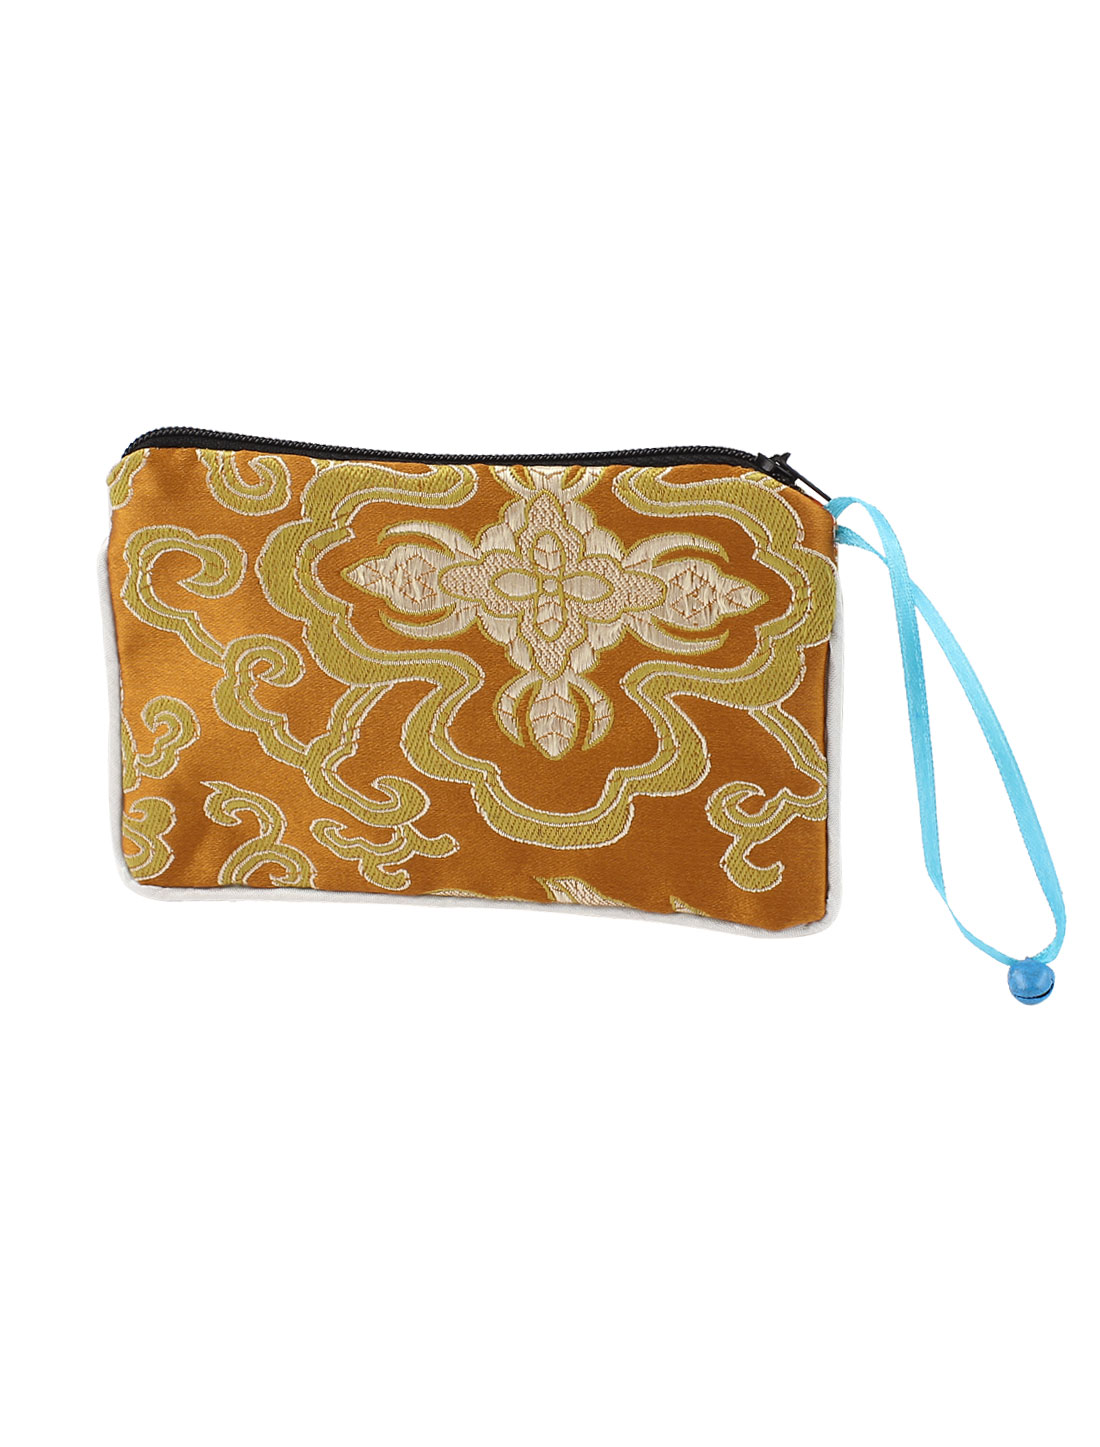 Women Brocade Rectangular Shaped Flower Pattern Zipper Closure Cash Coin Purse Bag Orange